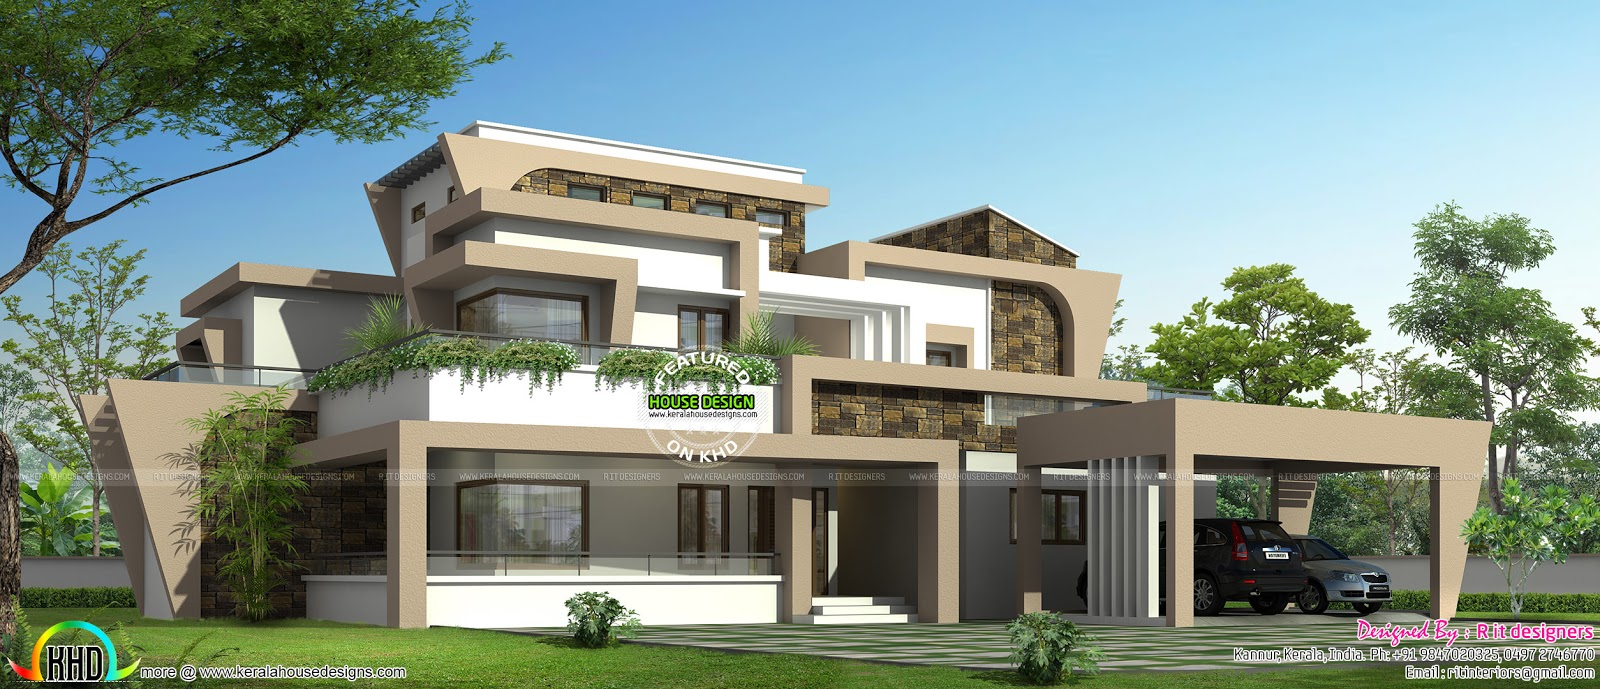 Unique modern home design in kerala kerala home design and floor plans New house design